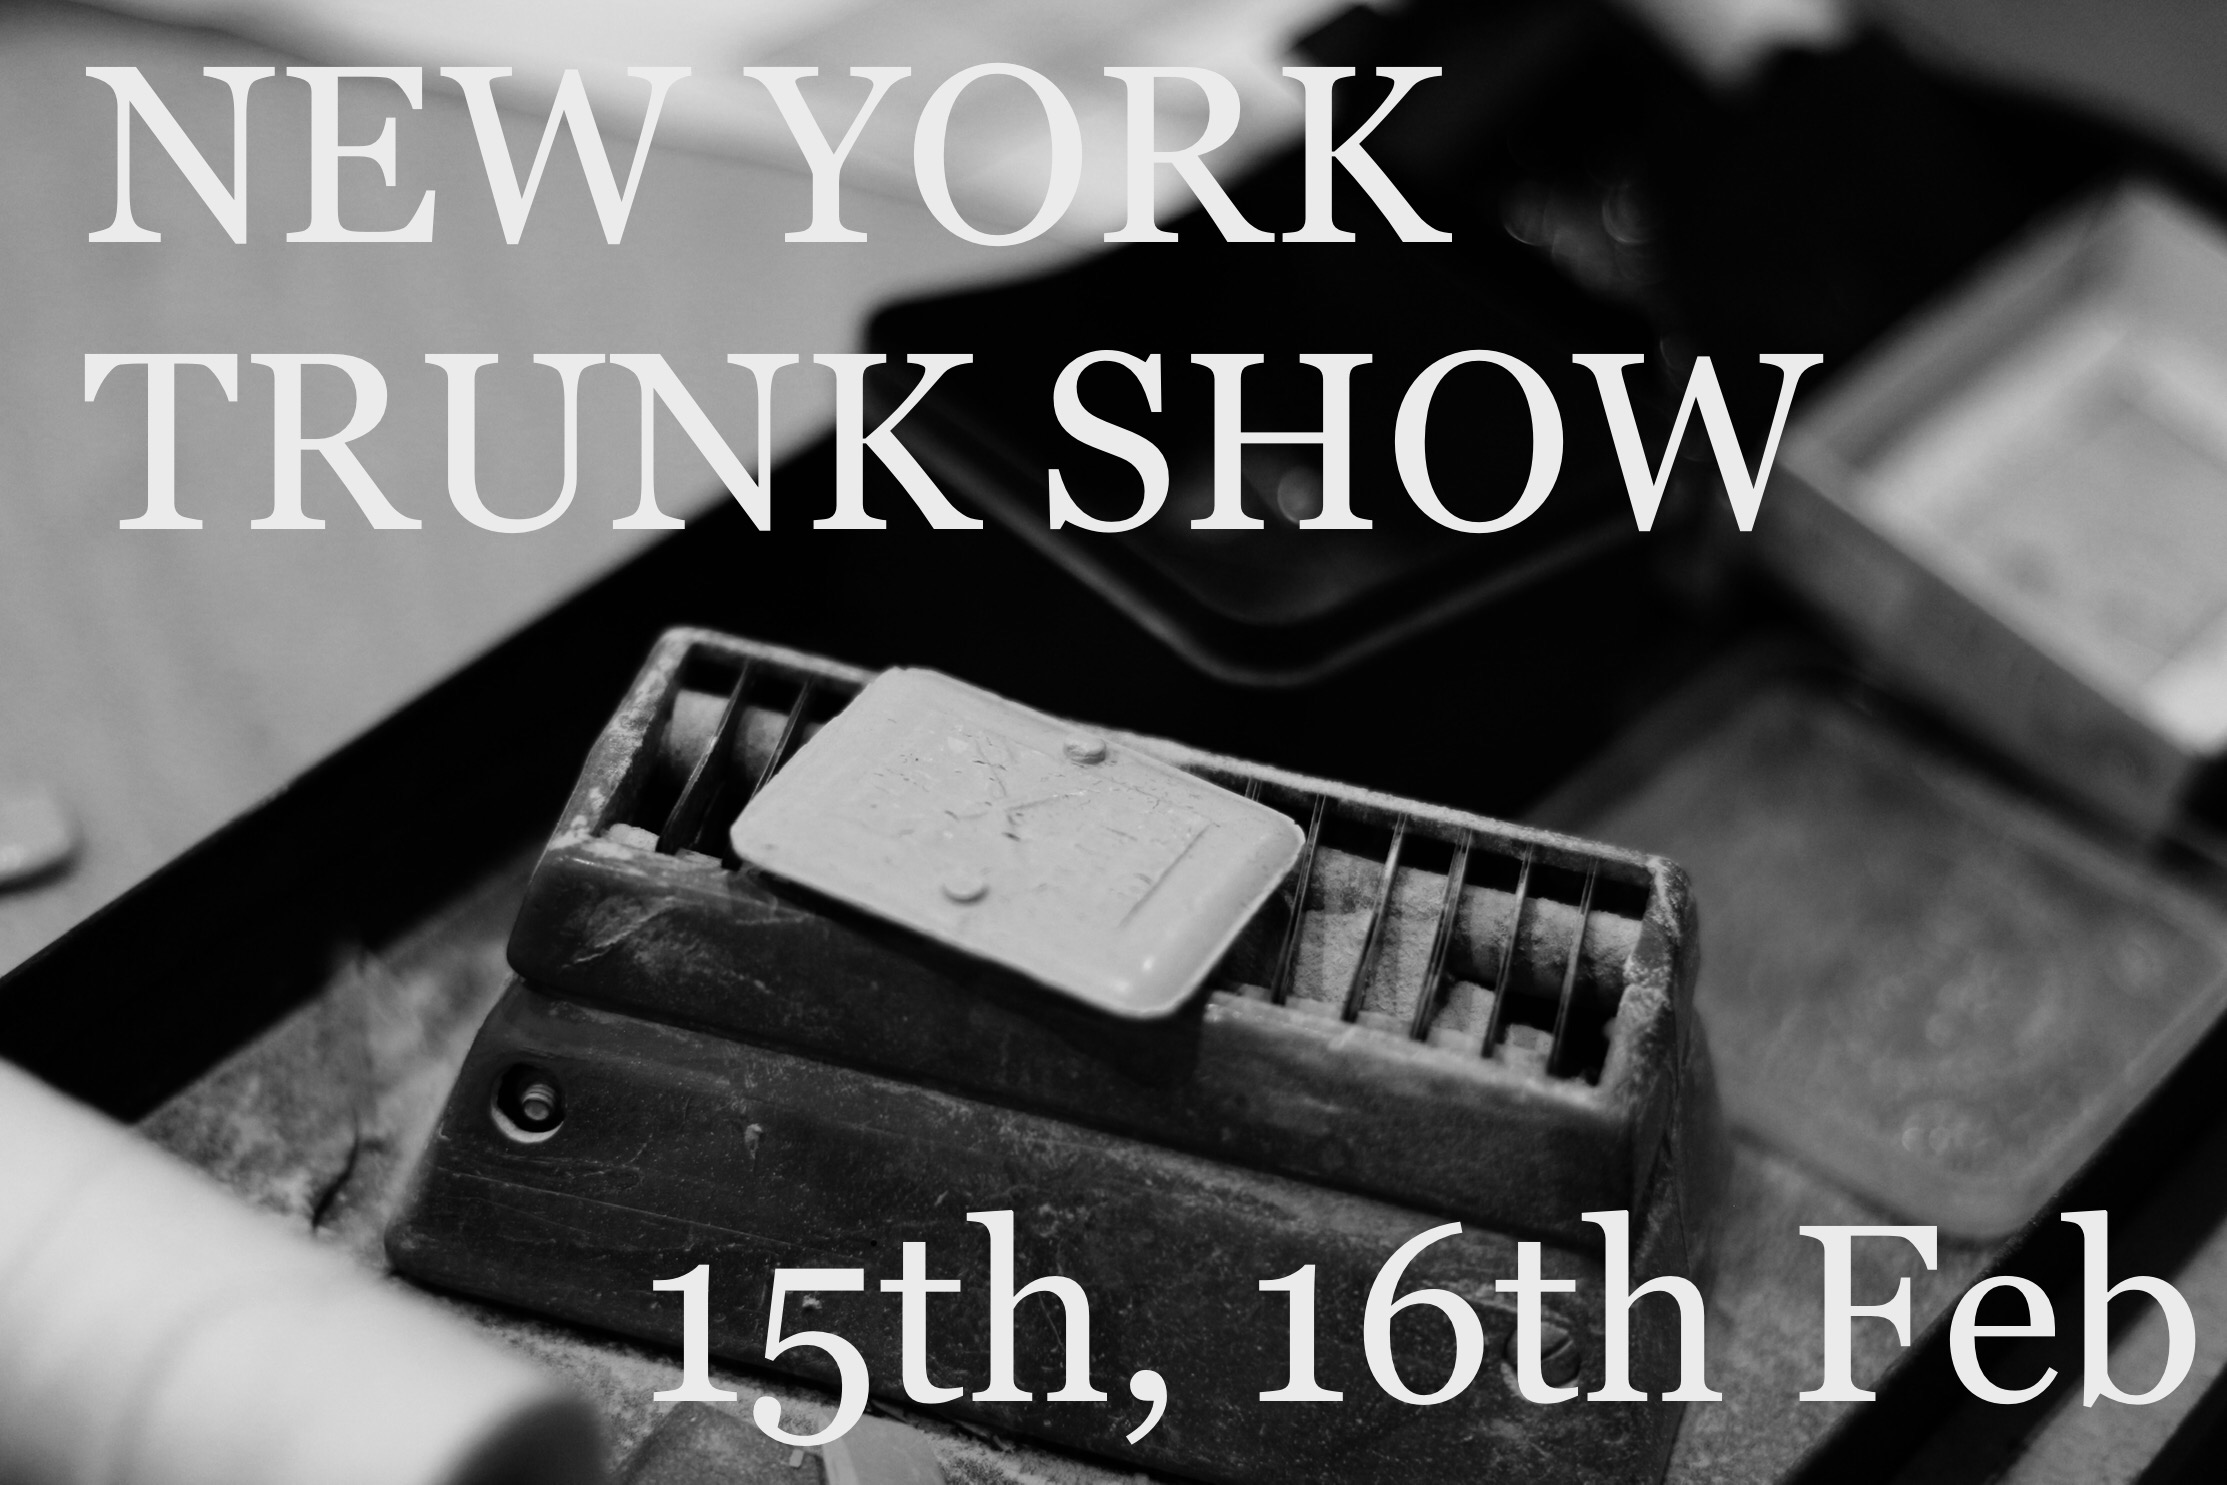 NEW YORK TRUNK SHOW